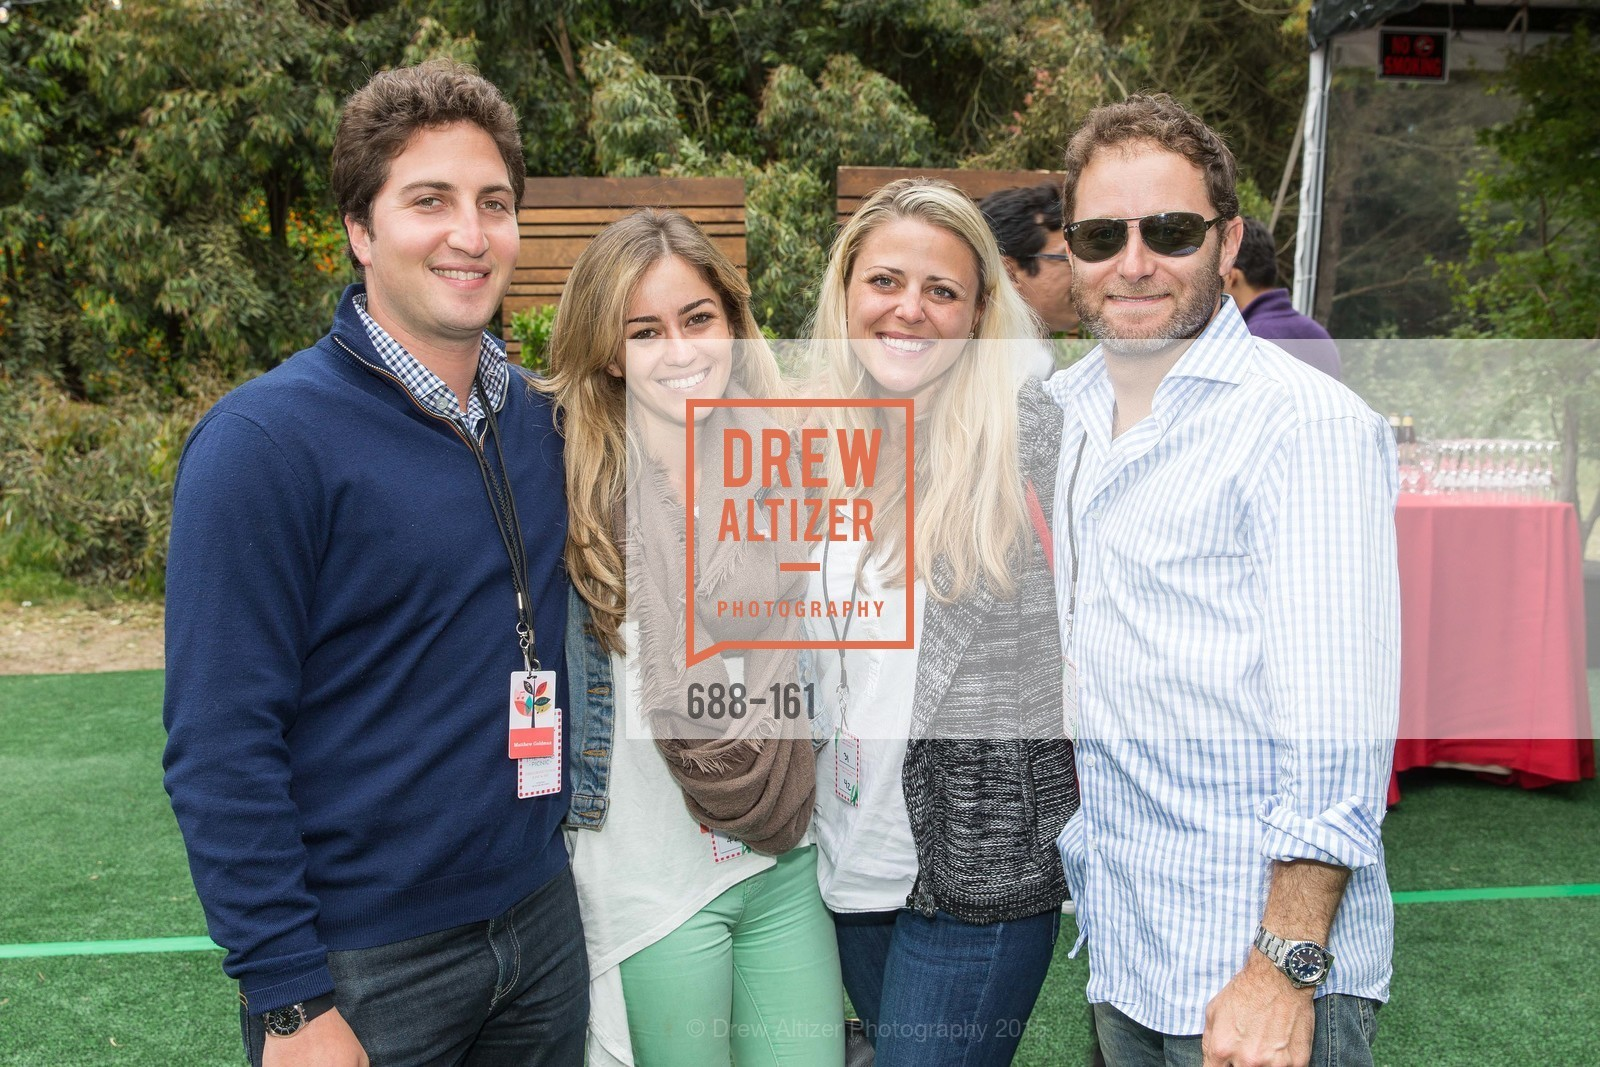 Matthew Goldman, Karen Jakubovits, Heather Pastorius, Scott Jacob, THE BIG PICNIC Kicking off  2015 Stern Grove Season, Stern Grove. 2750 19th Avenue, June 14th, 2015,Drew Altizer, Drew Altizer Photography, full-service agency, private events, San Francisco photographer, photographer california